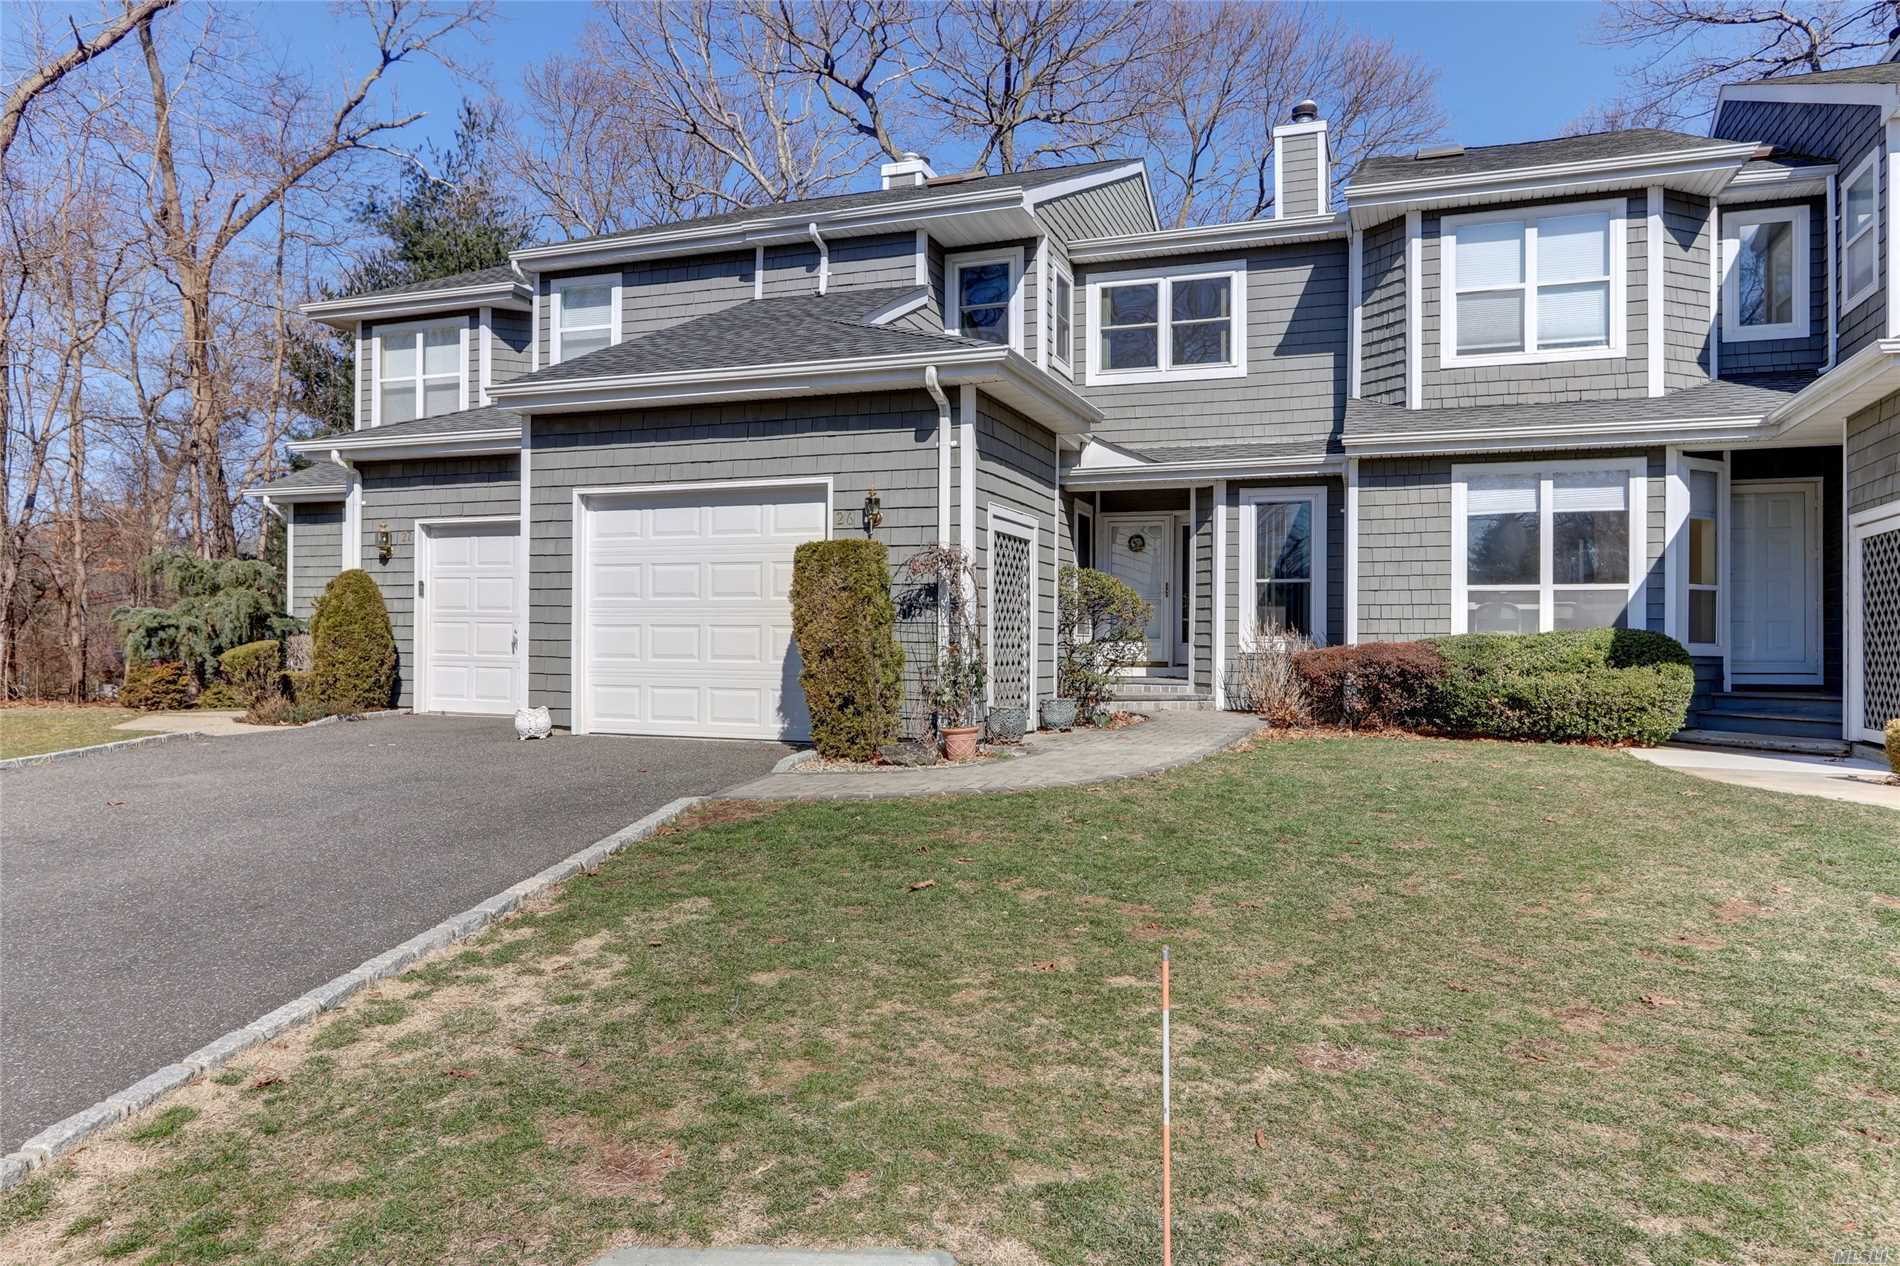 Move Right into this Lovingly Maintained & Updated 3 BR, 2 1/2 Bath Condo in Commack SD, Full Finished Basement, Wood Floors, Updated Heat/AC, Driveway, Walkway.